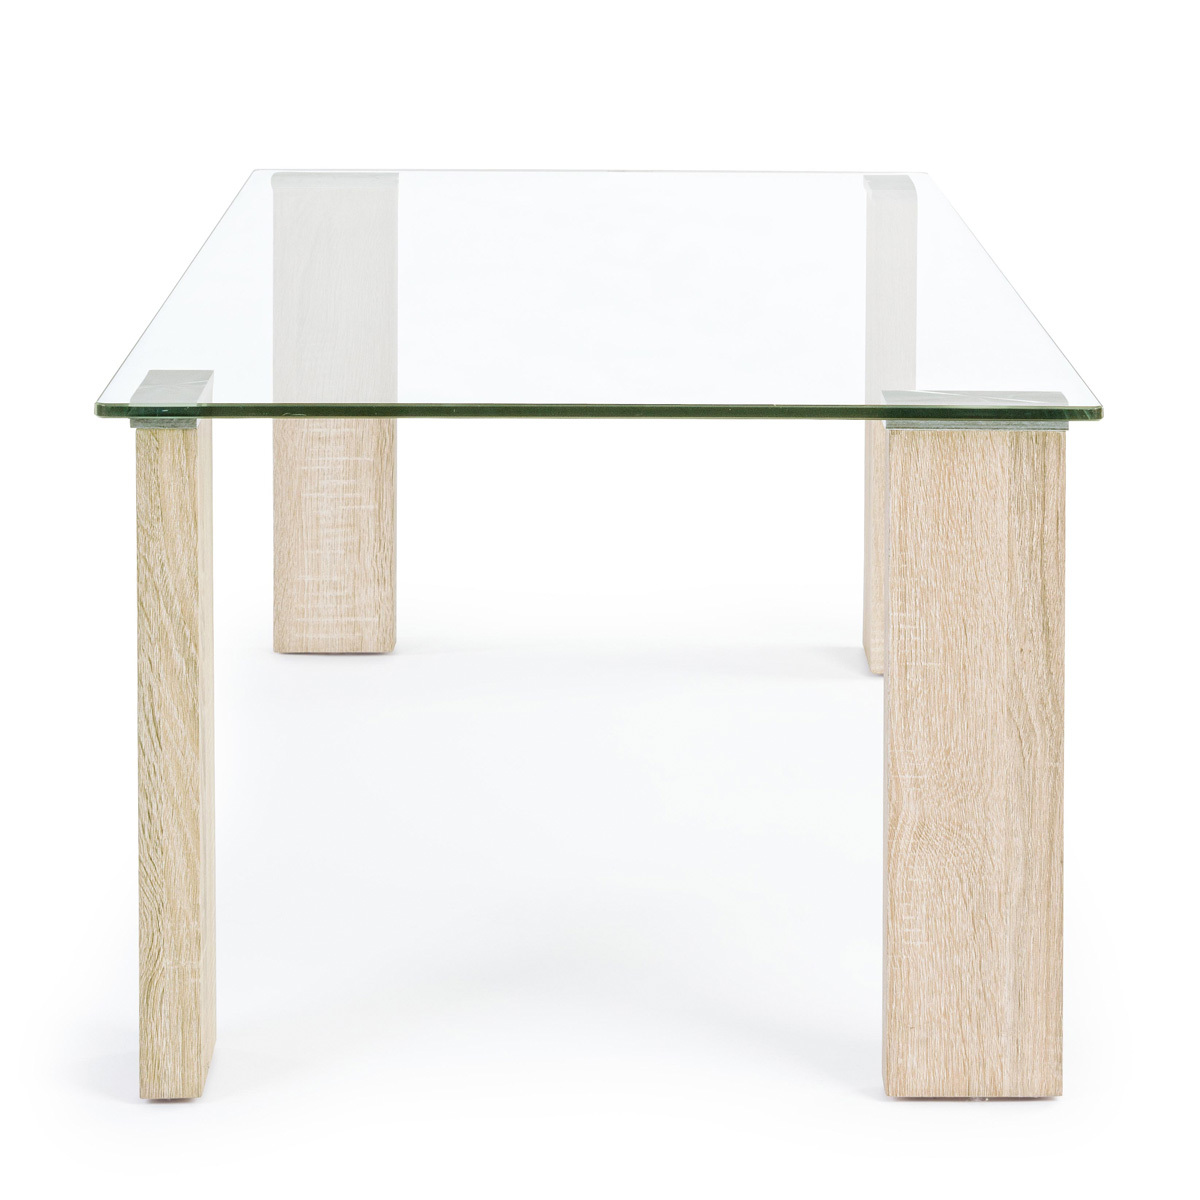 Photos 3: Bizzotto Table in glass and wood l. 120 x 60 0731677